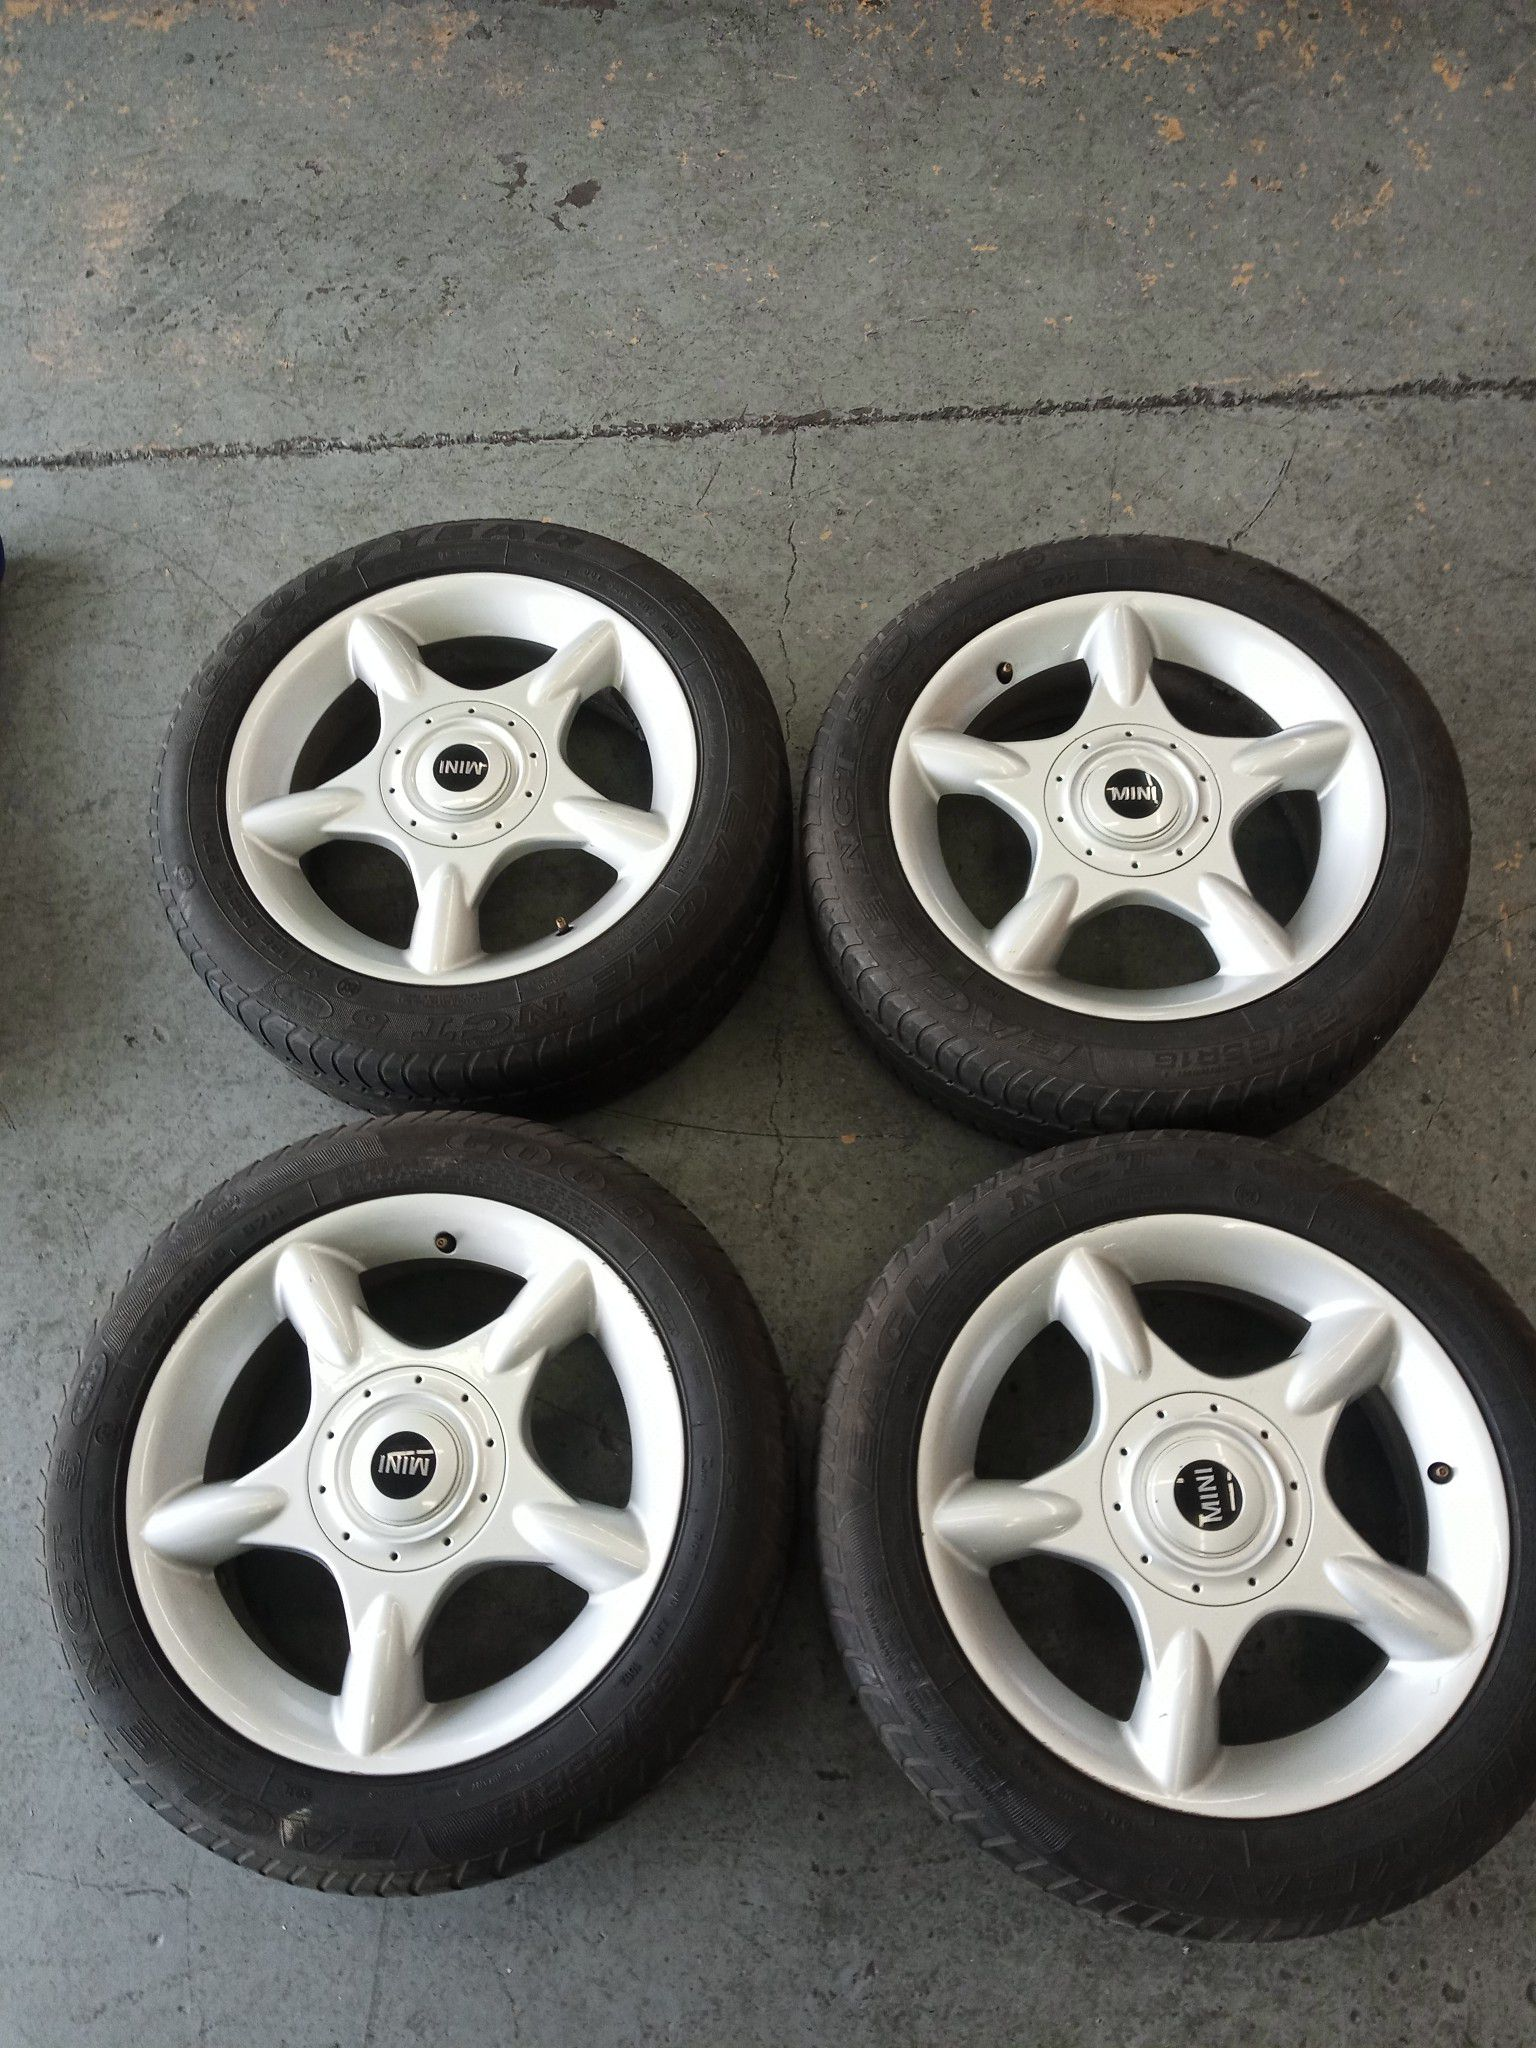 Mini Cooper wheels and tires 16 inch